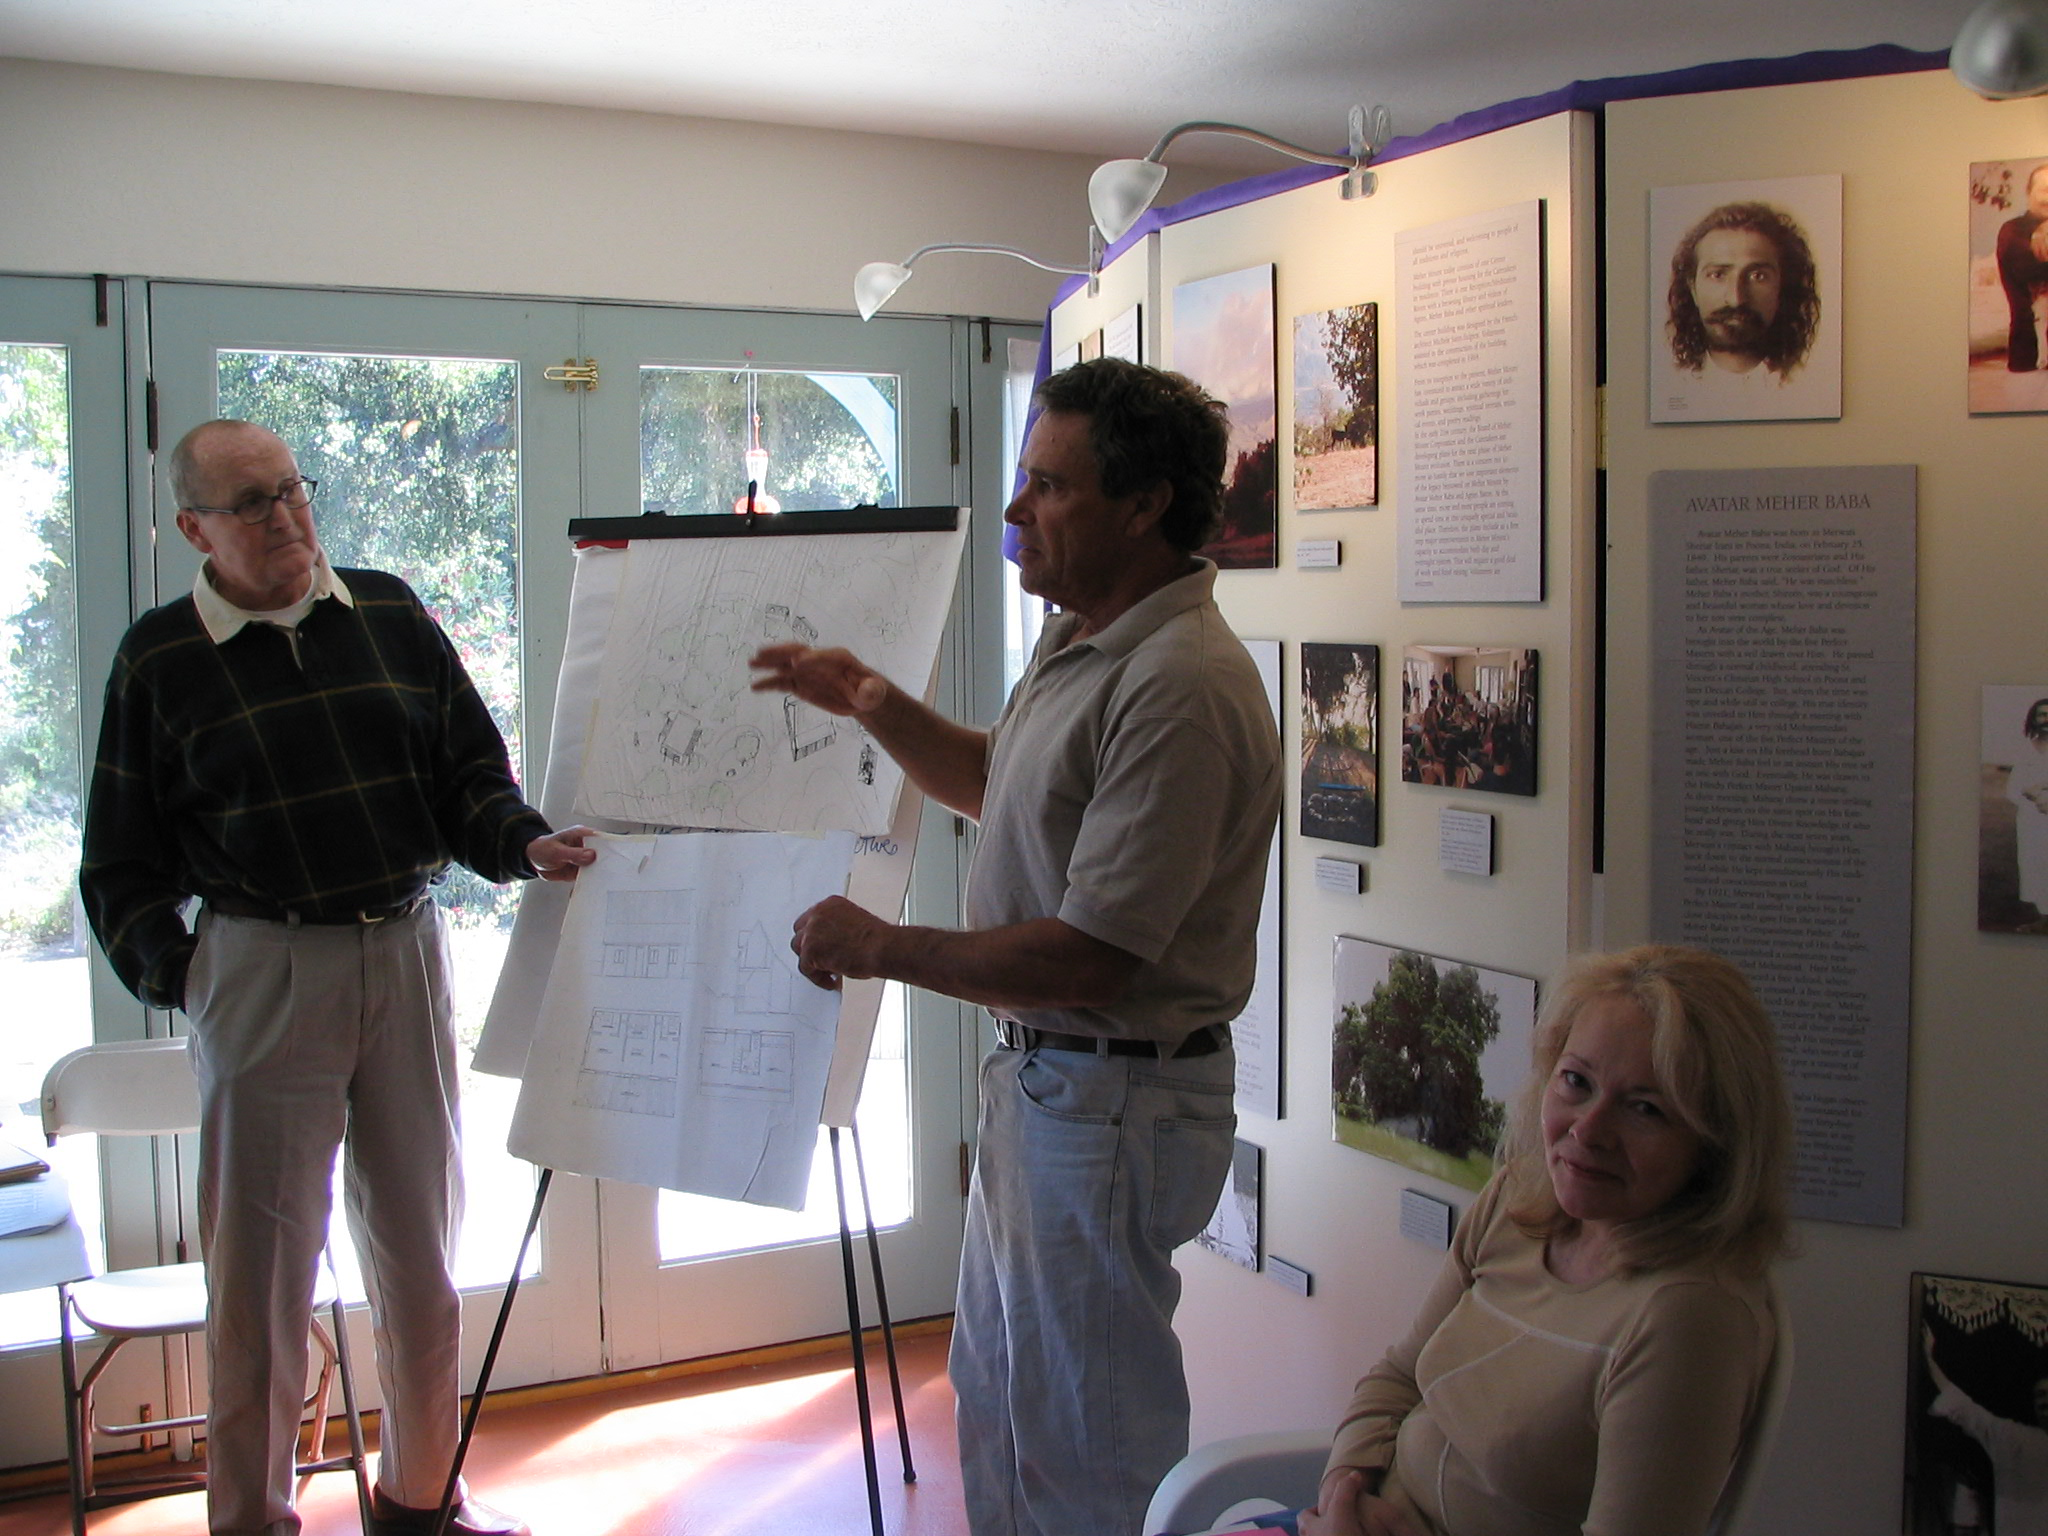 THE ONGOING MASTER PLAN DISCUSSION.Pictured are (left to right): Tom Dortch (Volunteer Management Consultant); Jim Auster (Board Member); and Deborah Dortch (Volunteer Management Consultant). (Photo: Sam Ervin, 2004)